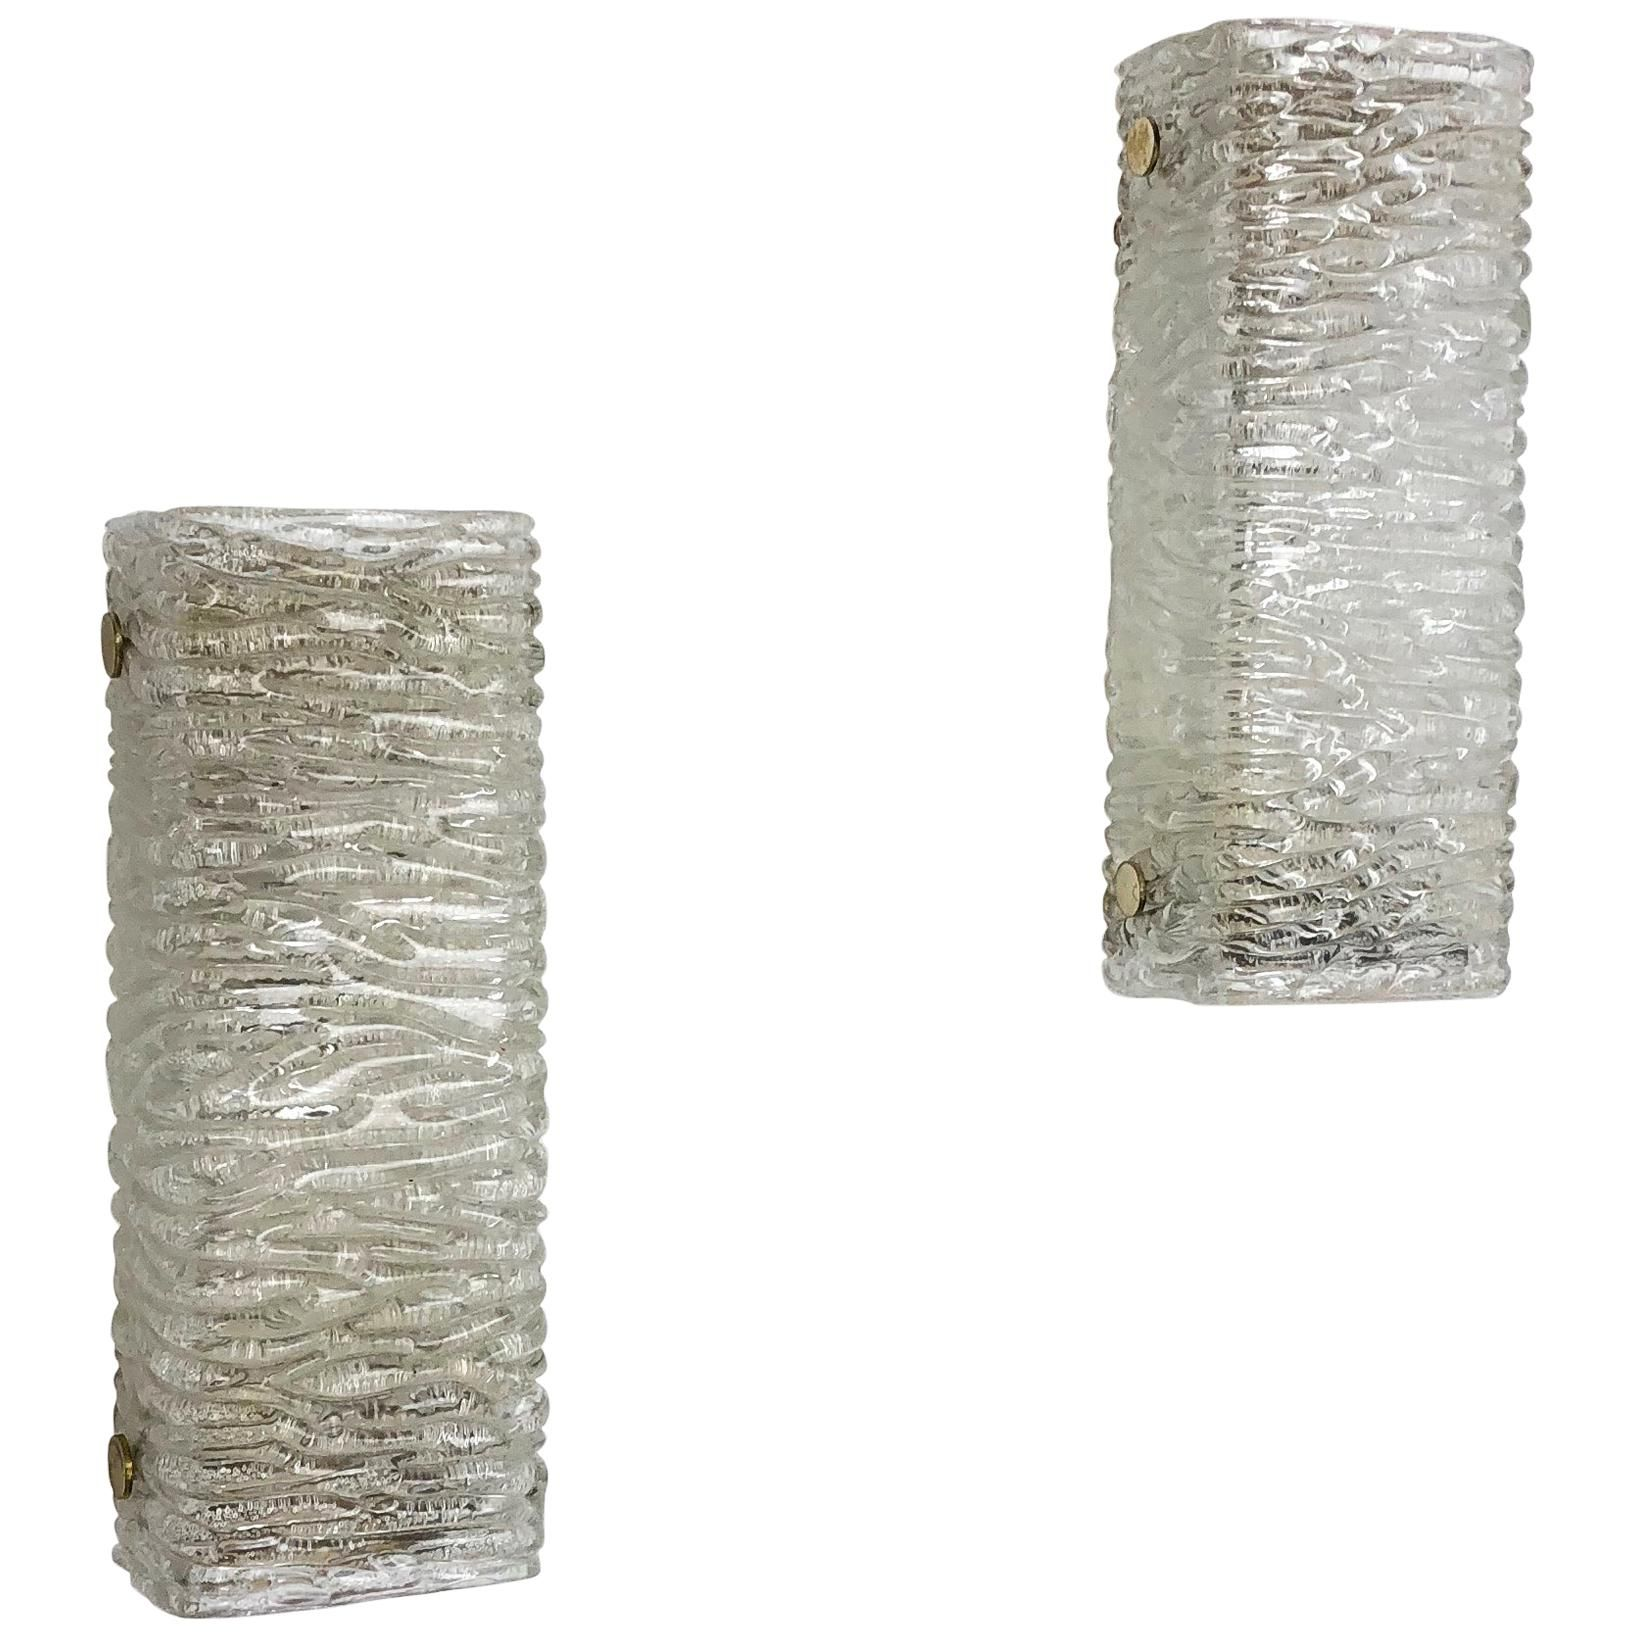 Leuchten Kaiser Set Of 2 Vintage 1960s Ice Glass Metal Wall Light By Kaiser Leuchten, Germany - For Sale | The Kairos Collective Uk